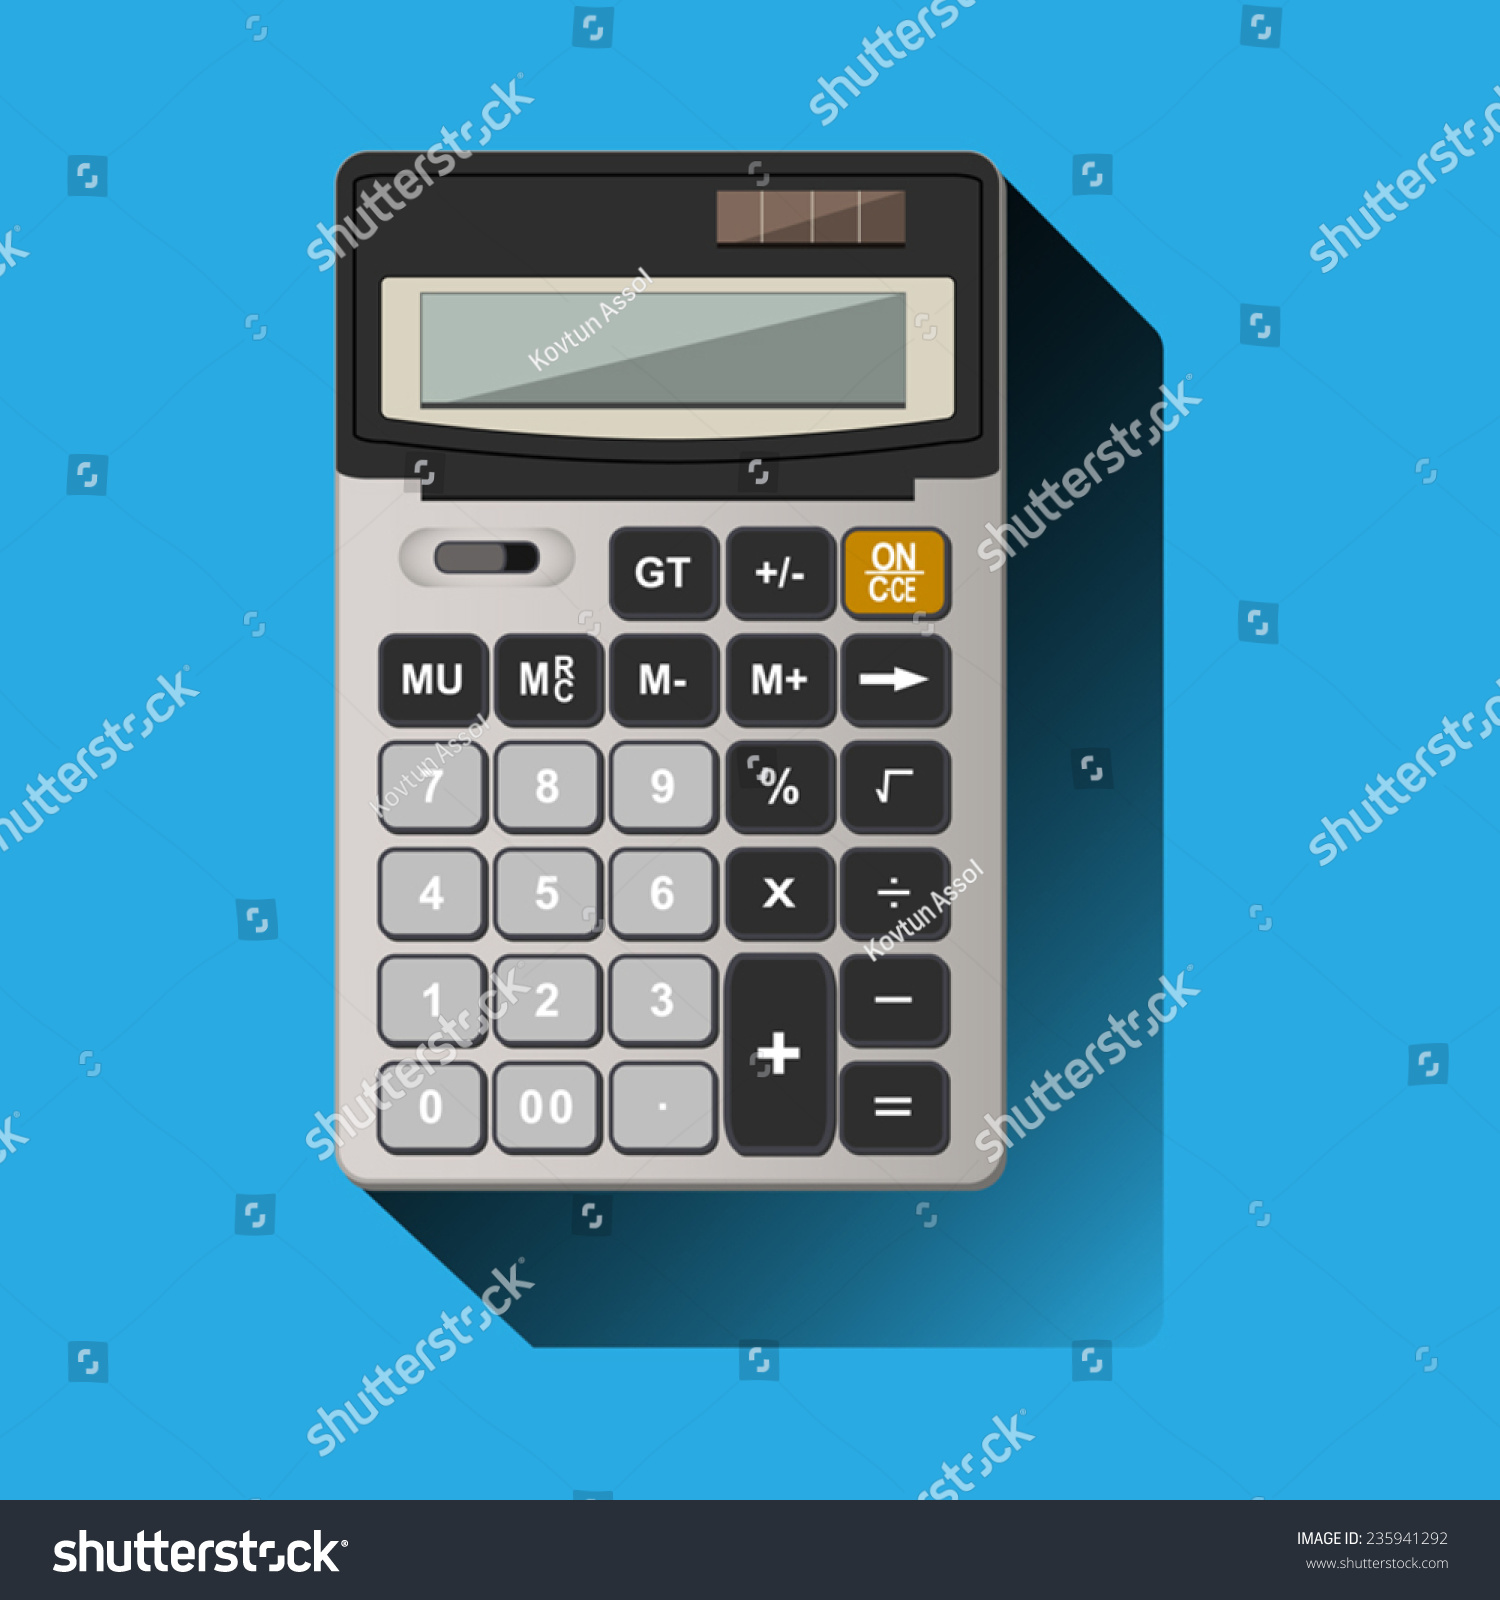 painted realistic calculator on blue background | EZ Canvas